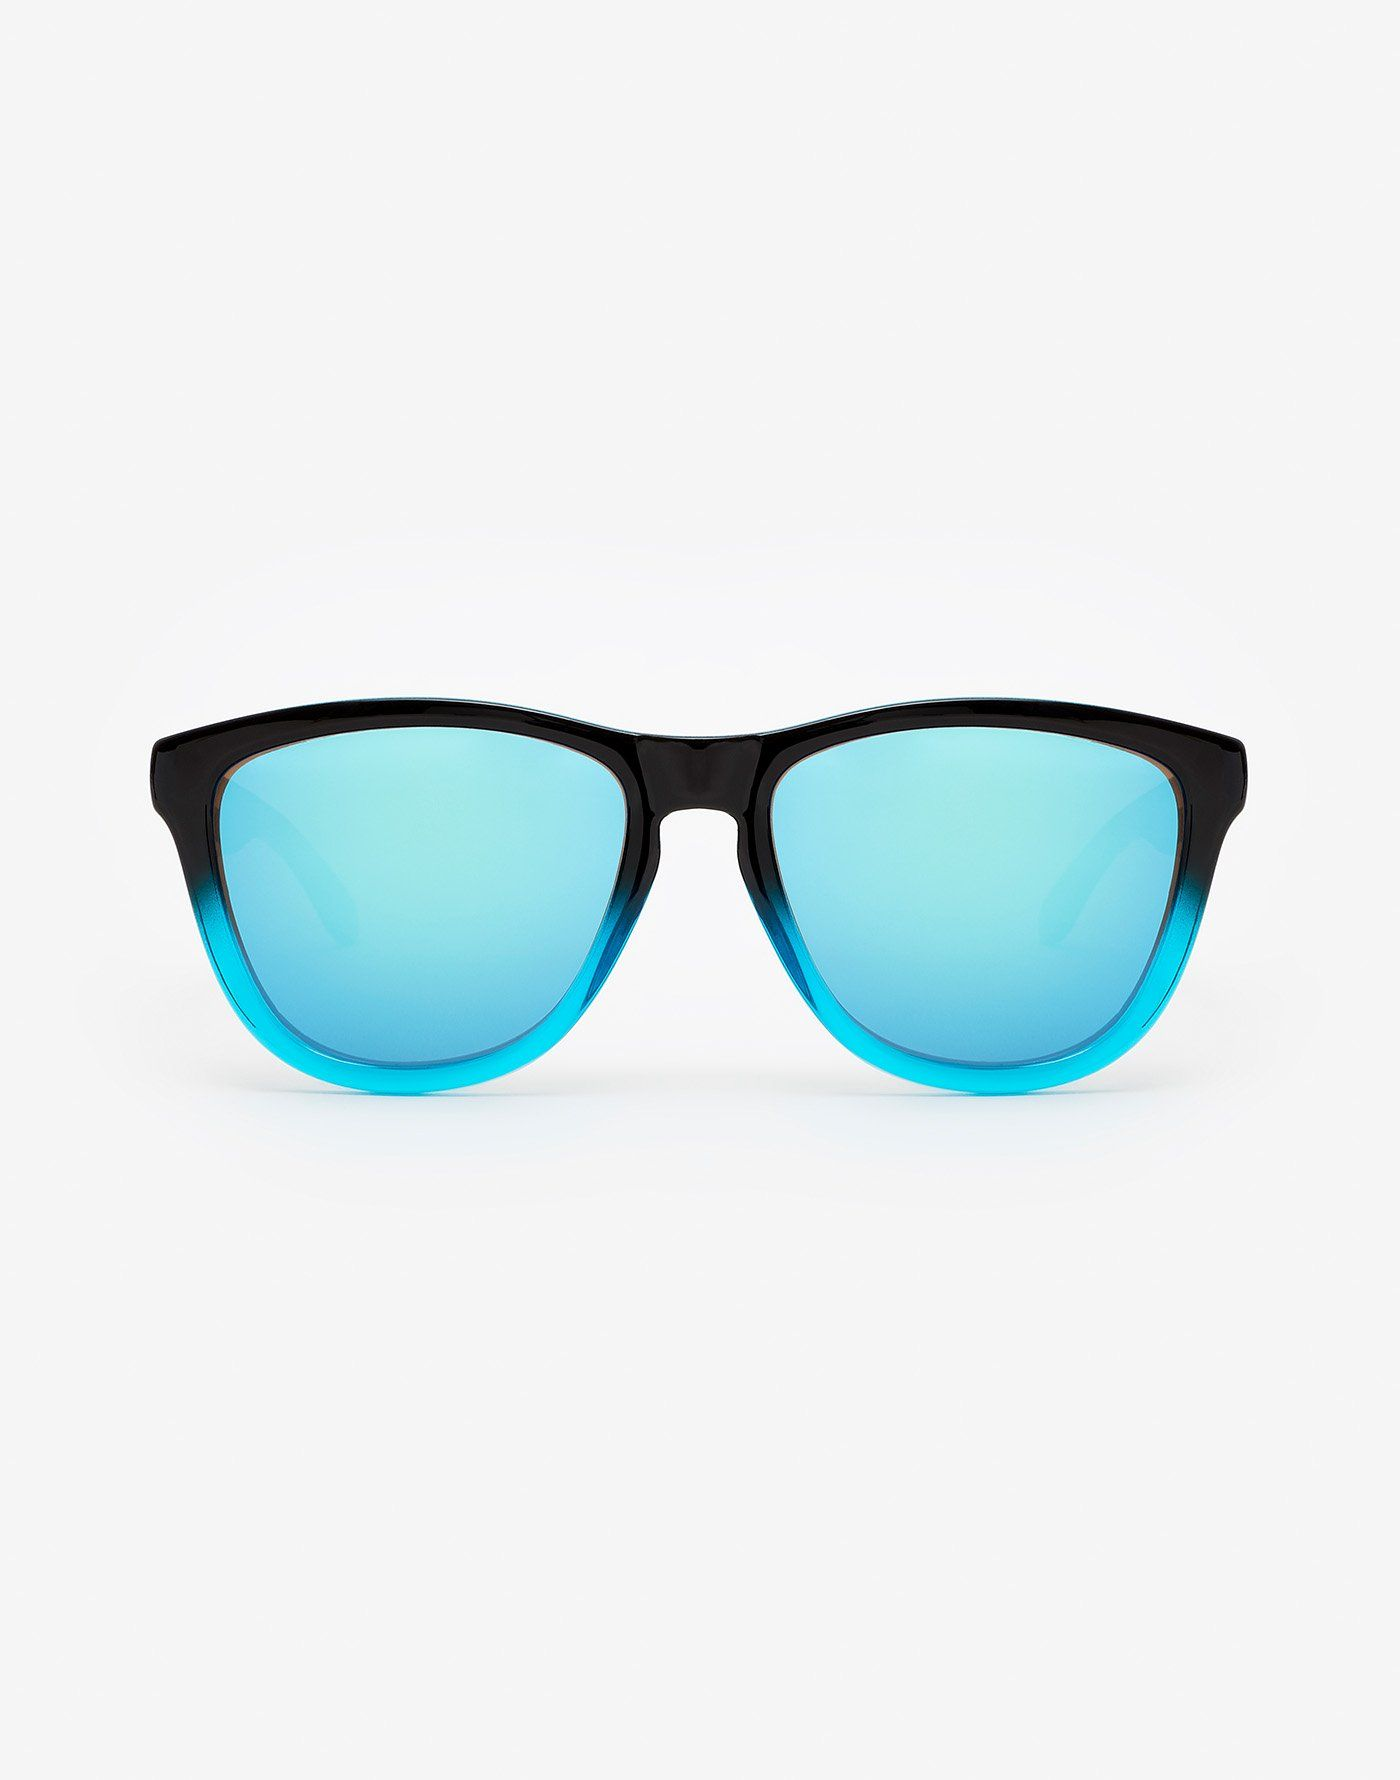 Fusion · Clear Blue One Blue, Shades of turquoise